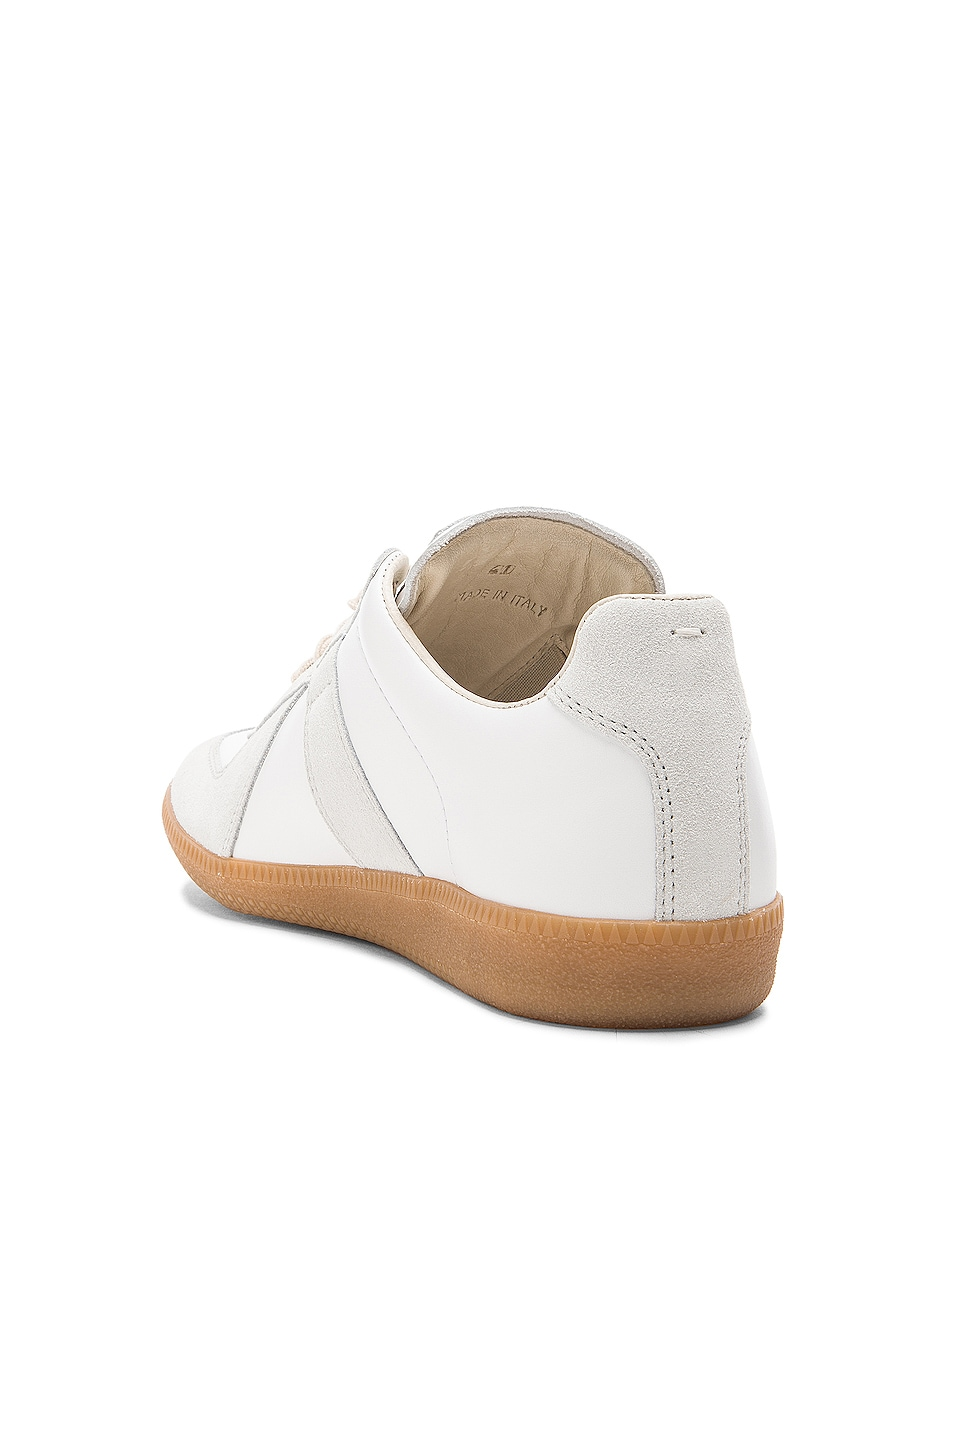 Image 3 of Maison Margiela Replica Calf & Lambskin Leather Sneakers in White